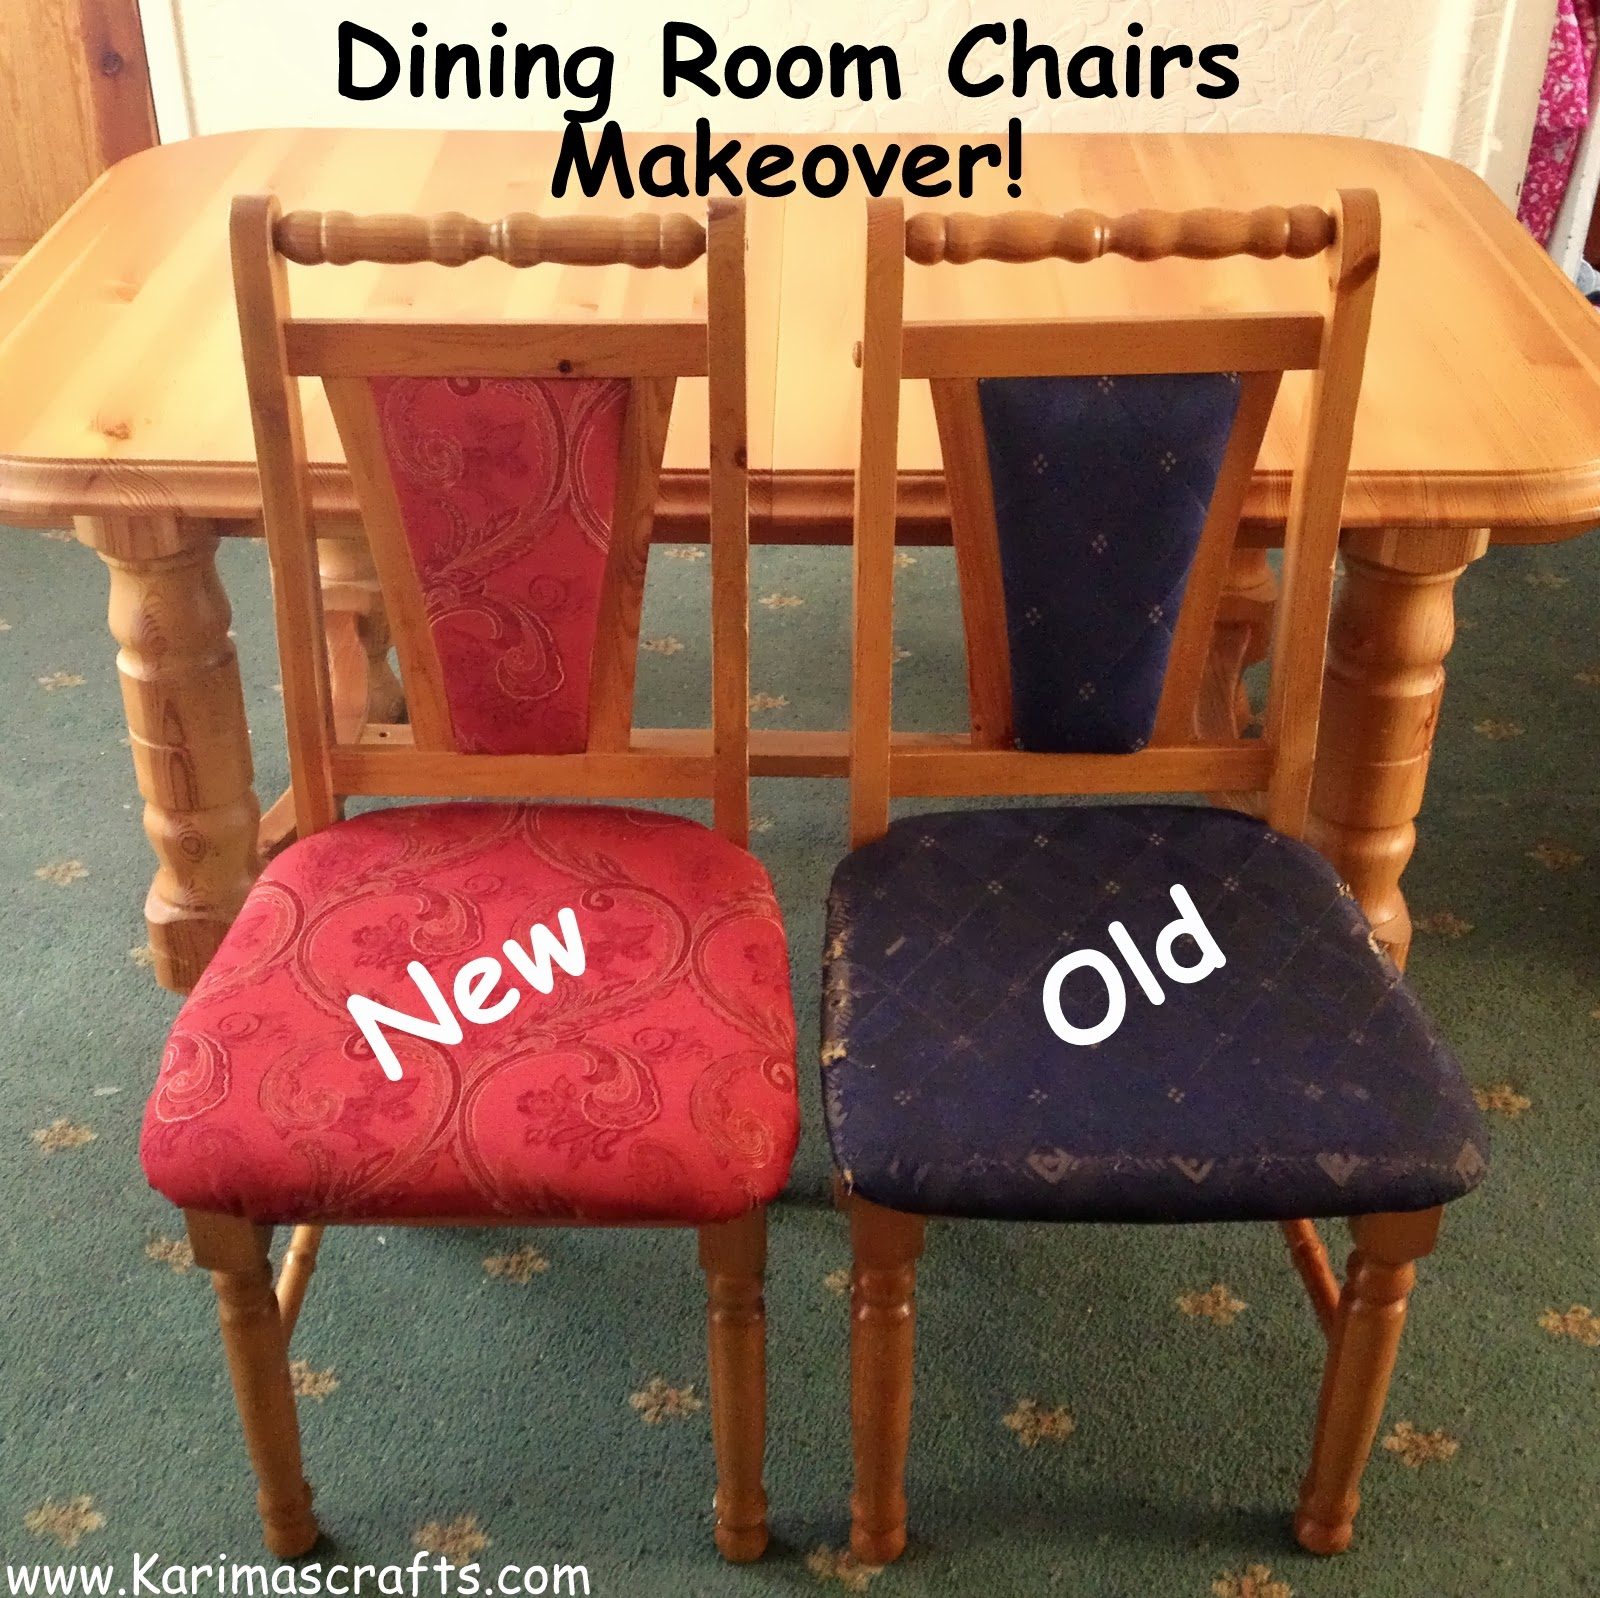 Karima\'s Crafts: Reupholstered Dining Room Chairs Tutorial and More!